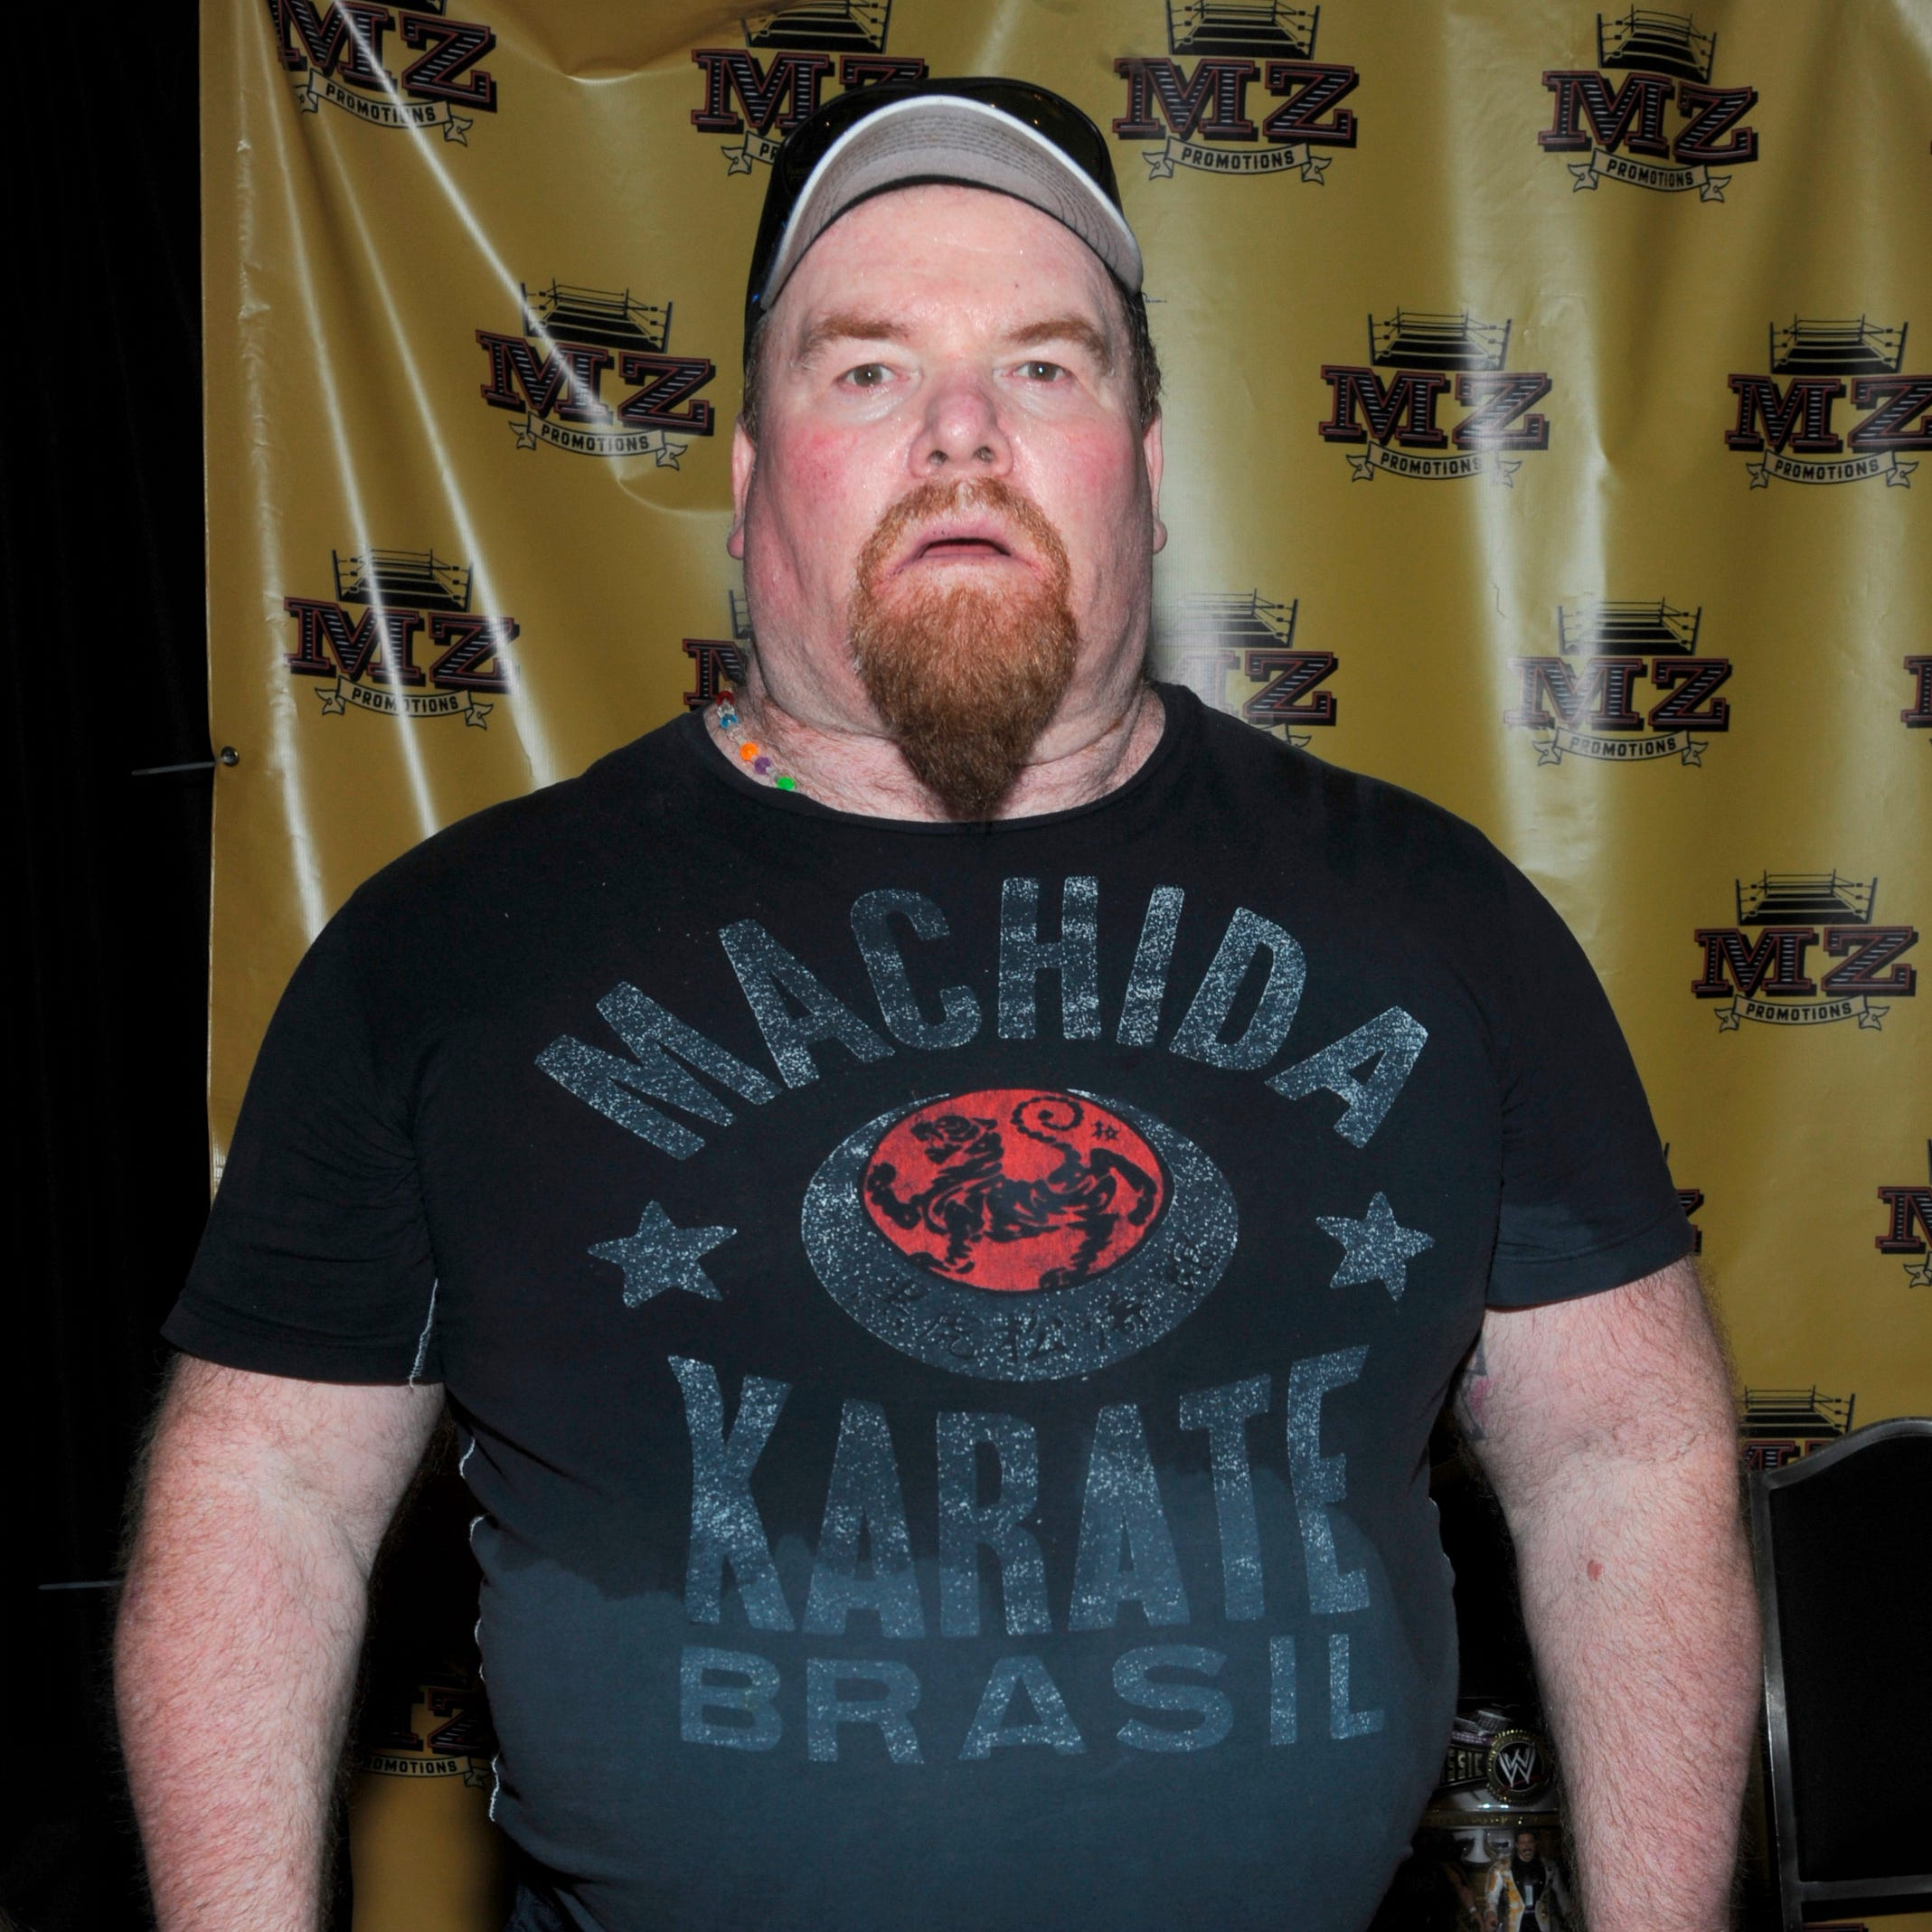 WWE wrestler Jim 'The Anvil' Neidhart, father of 'Total Divas' Natalya, dies at 63